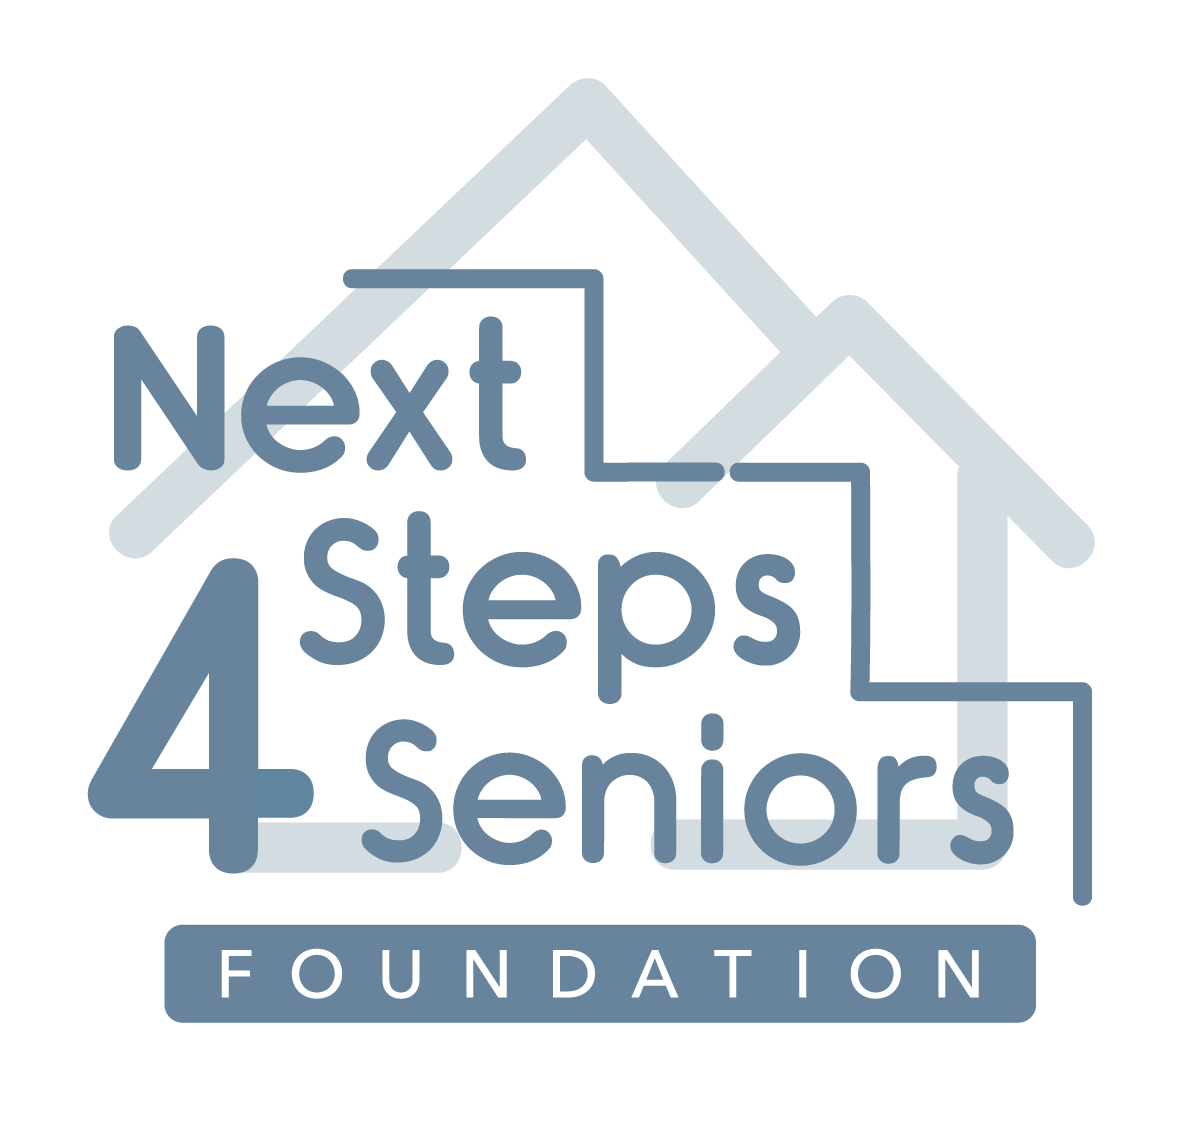 Next Steps 4 Seniors